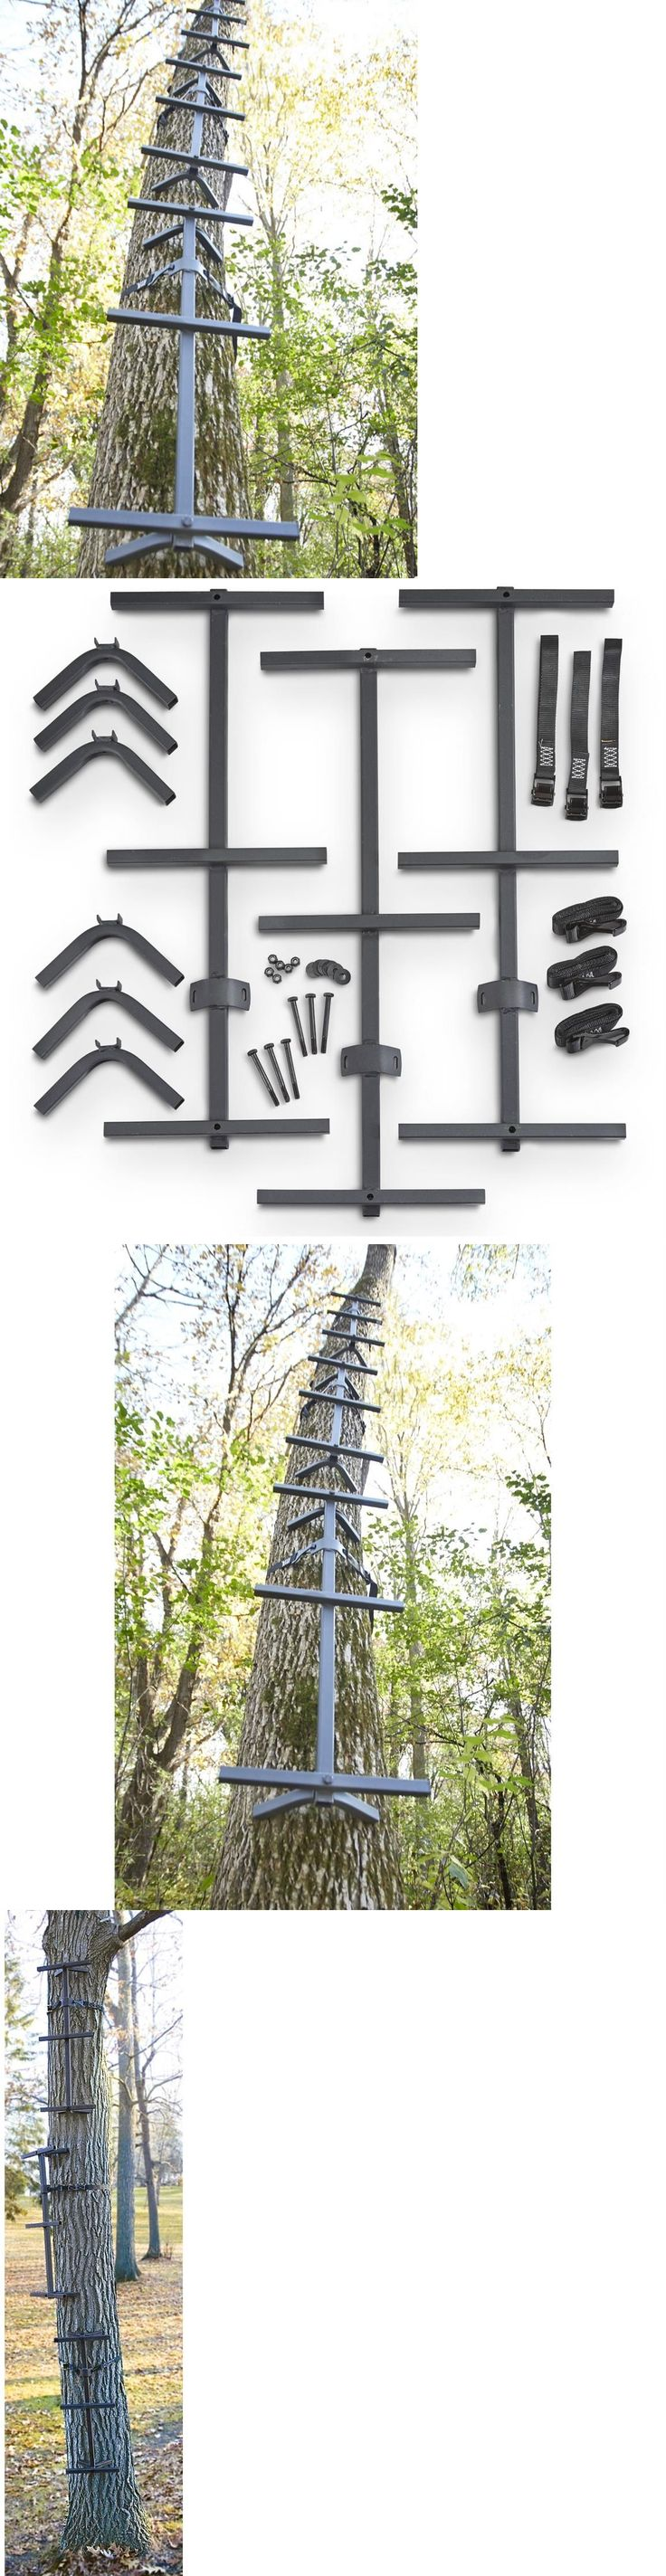 Blind and Tree Stand Accessories 177912: 3 Pk Hunting Climbing Ladder Sticks Tree Stand Attachment Bow Deer Game Hunters BUY IT NOW ONLY: $47.59